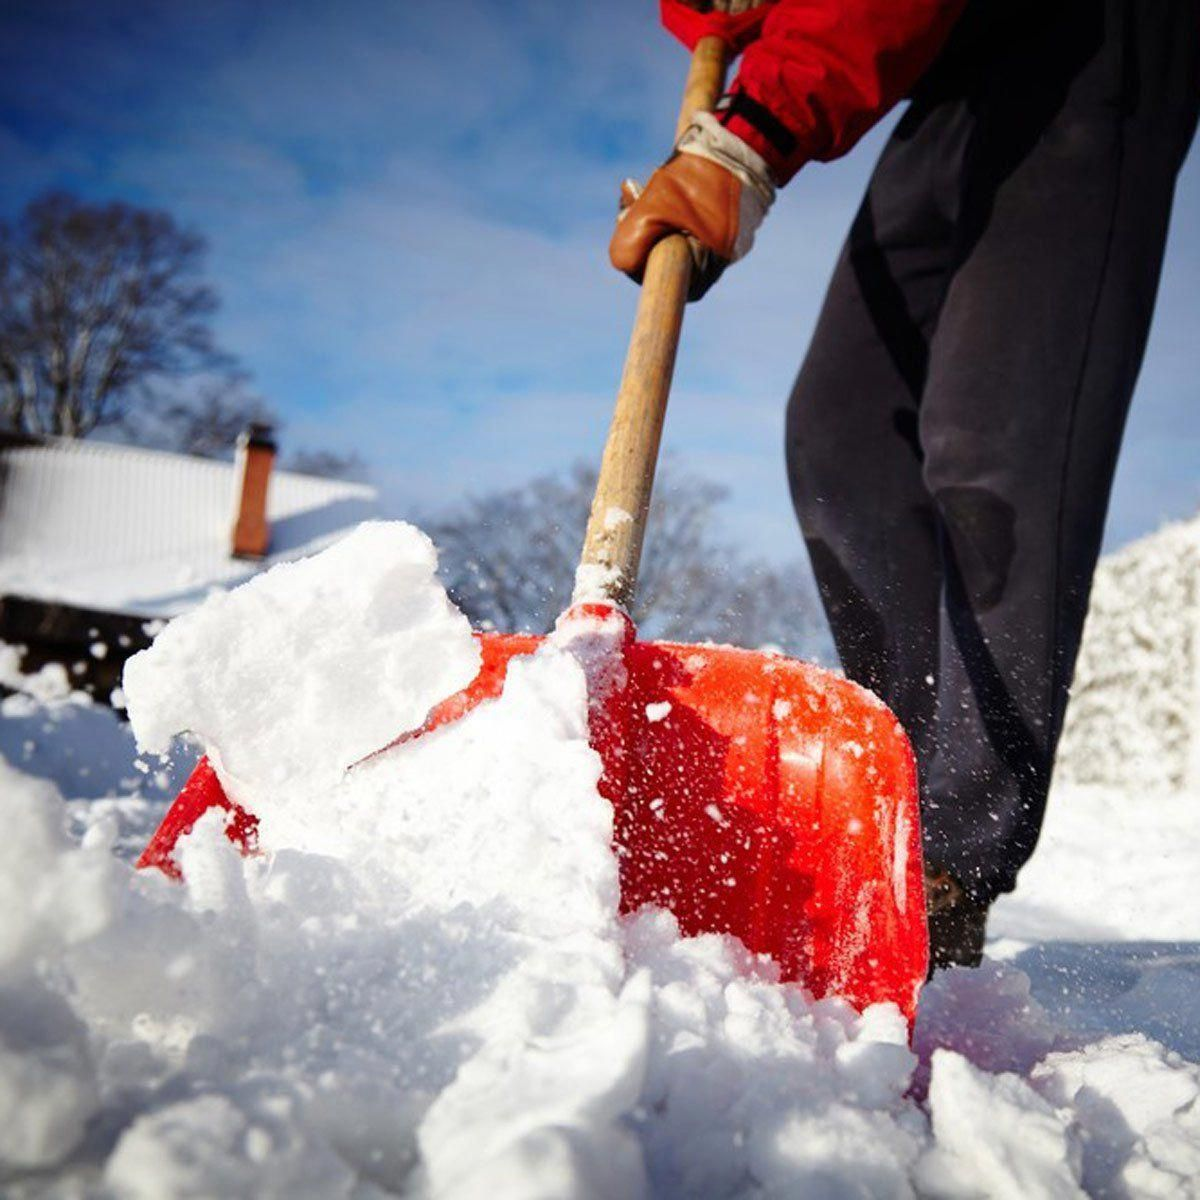 out of rock salt? here's how to avoid slipping and sliding